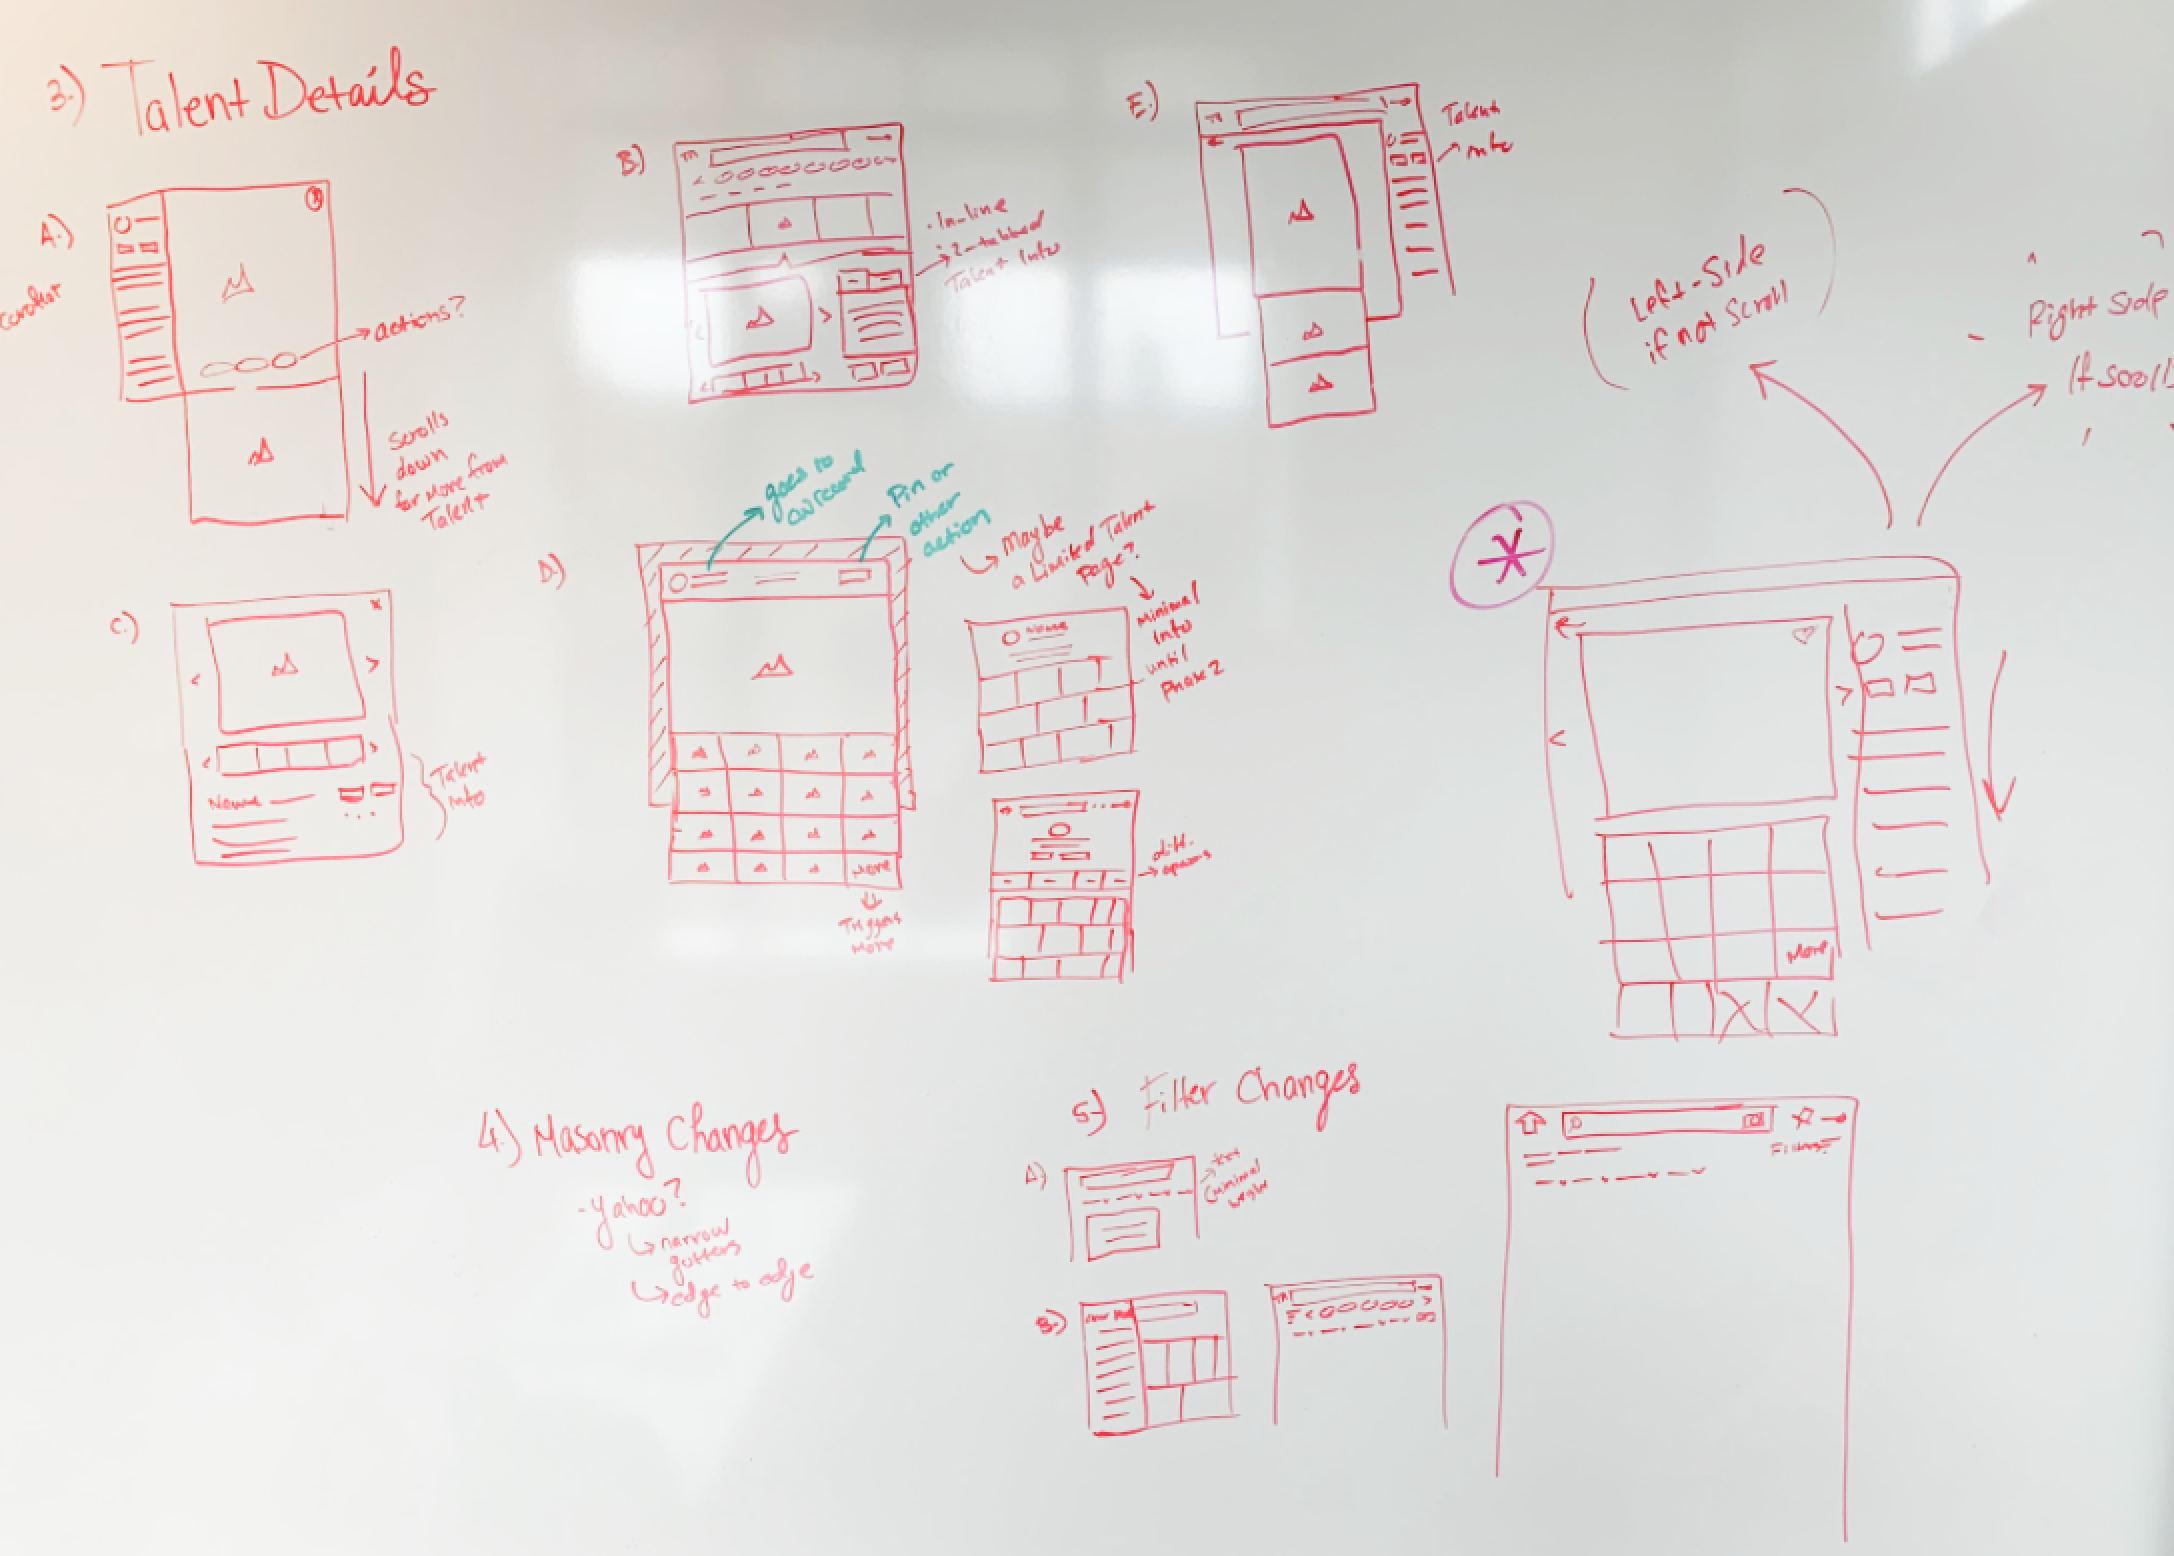 Whiteboard with sketches on it.